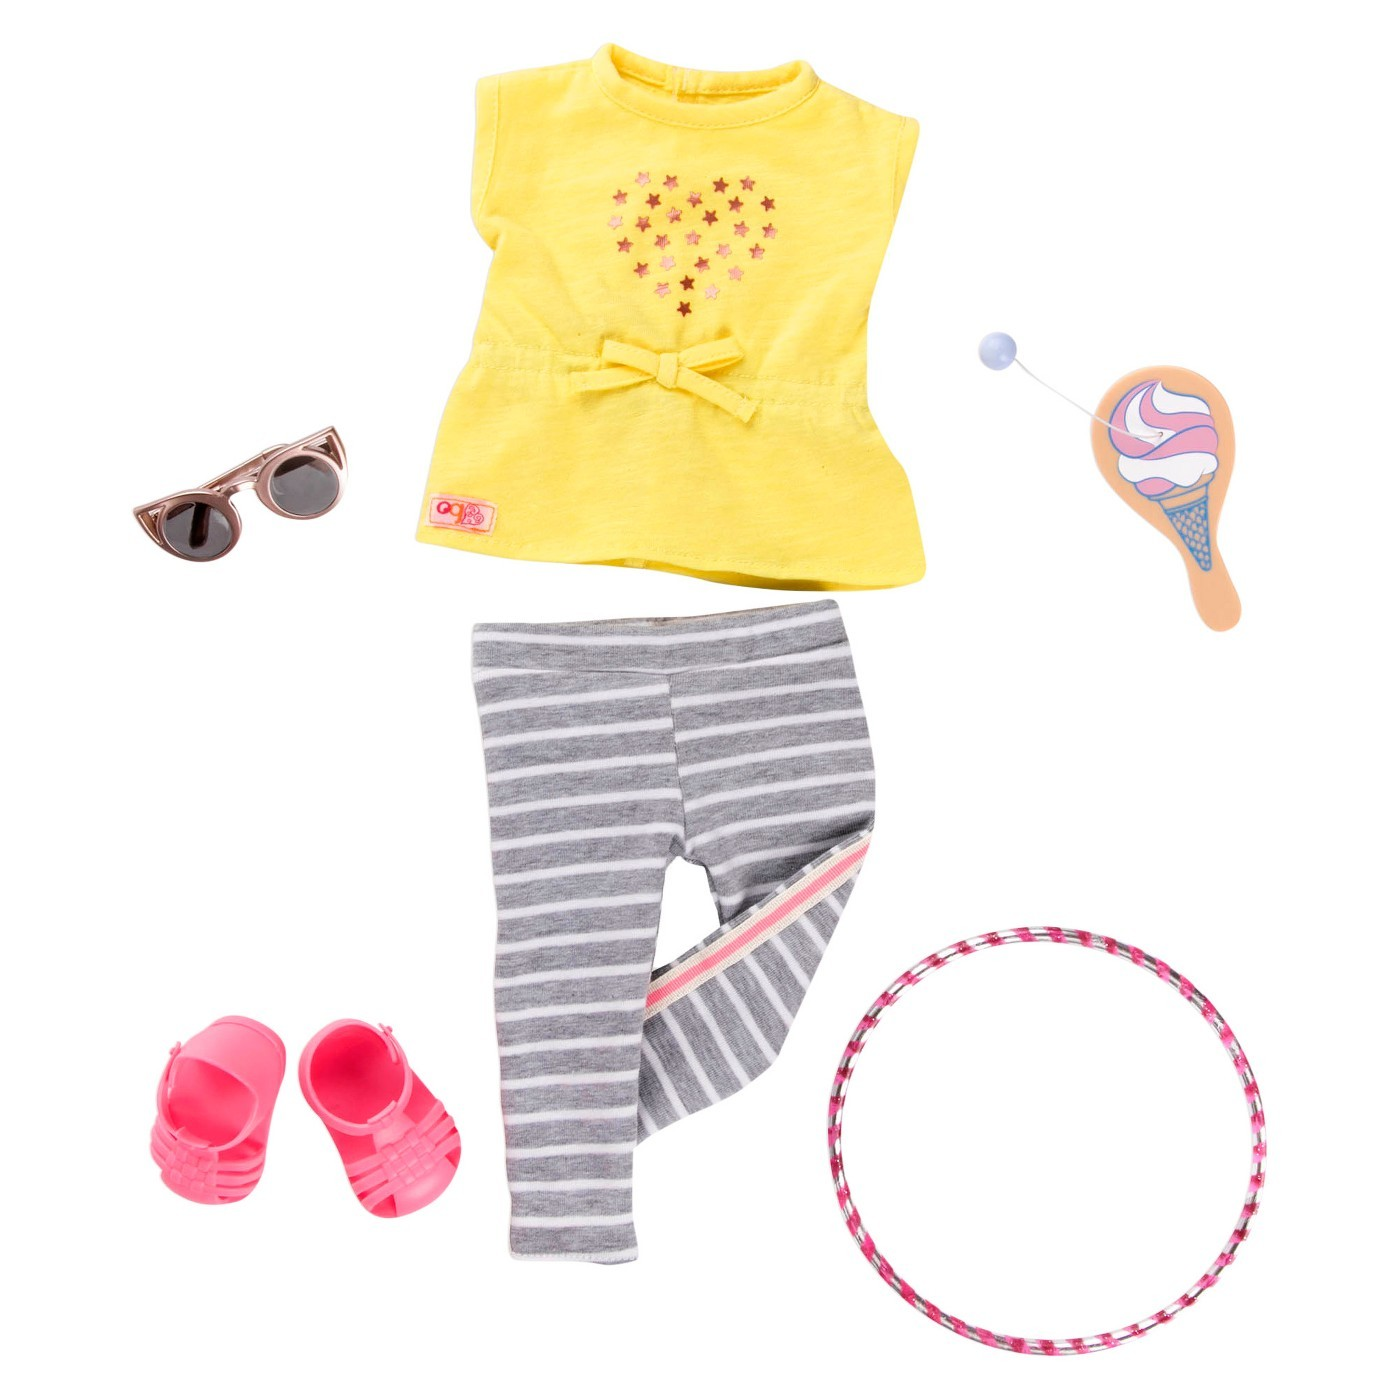 Our Generation: Regular Outfit - Playtime image